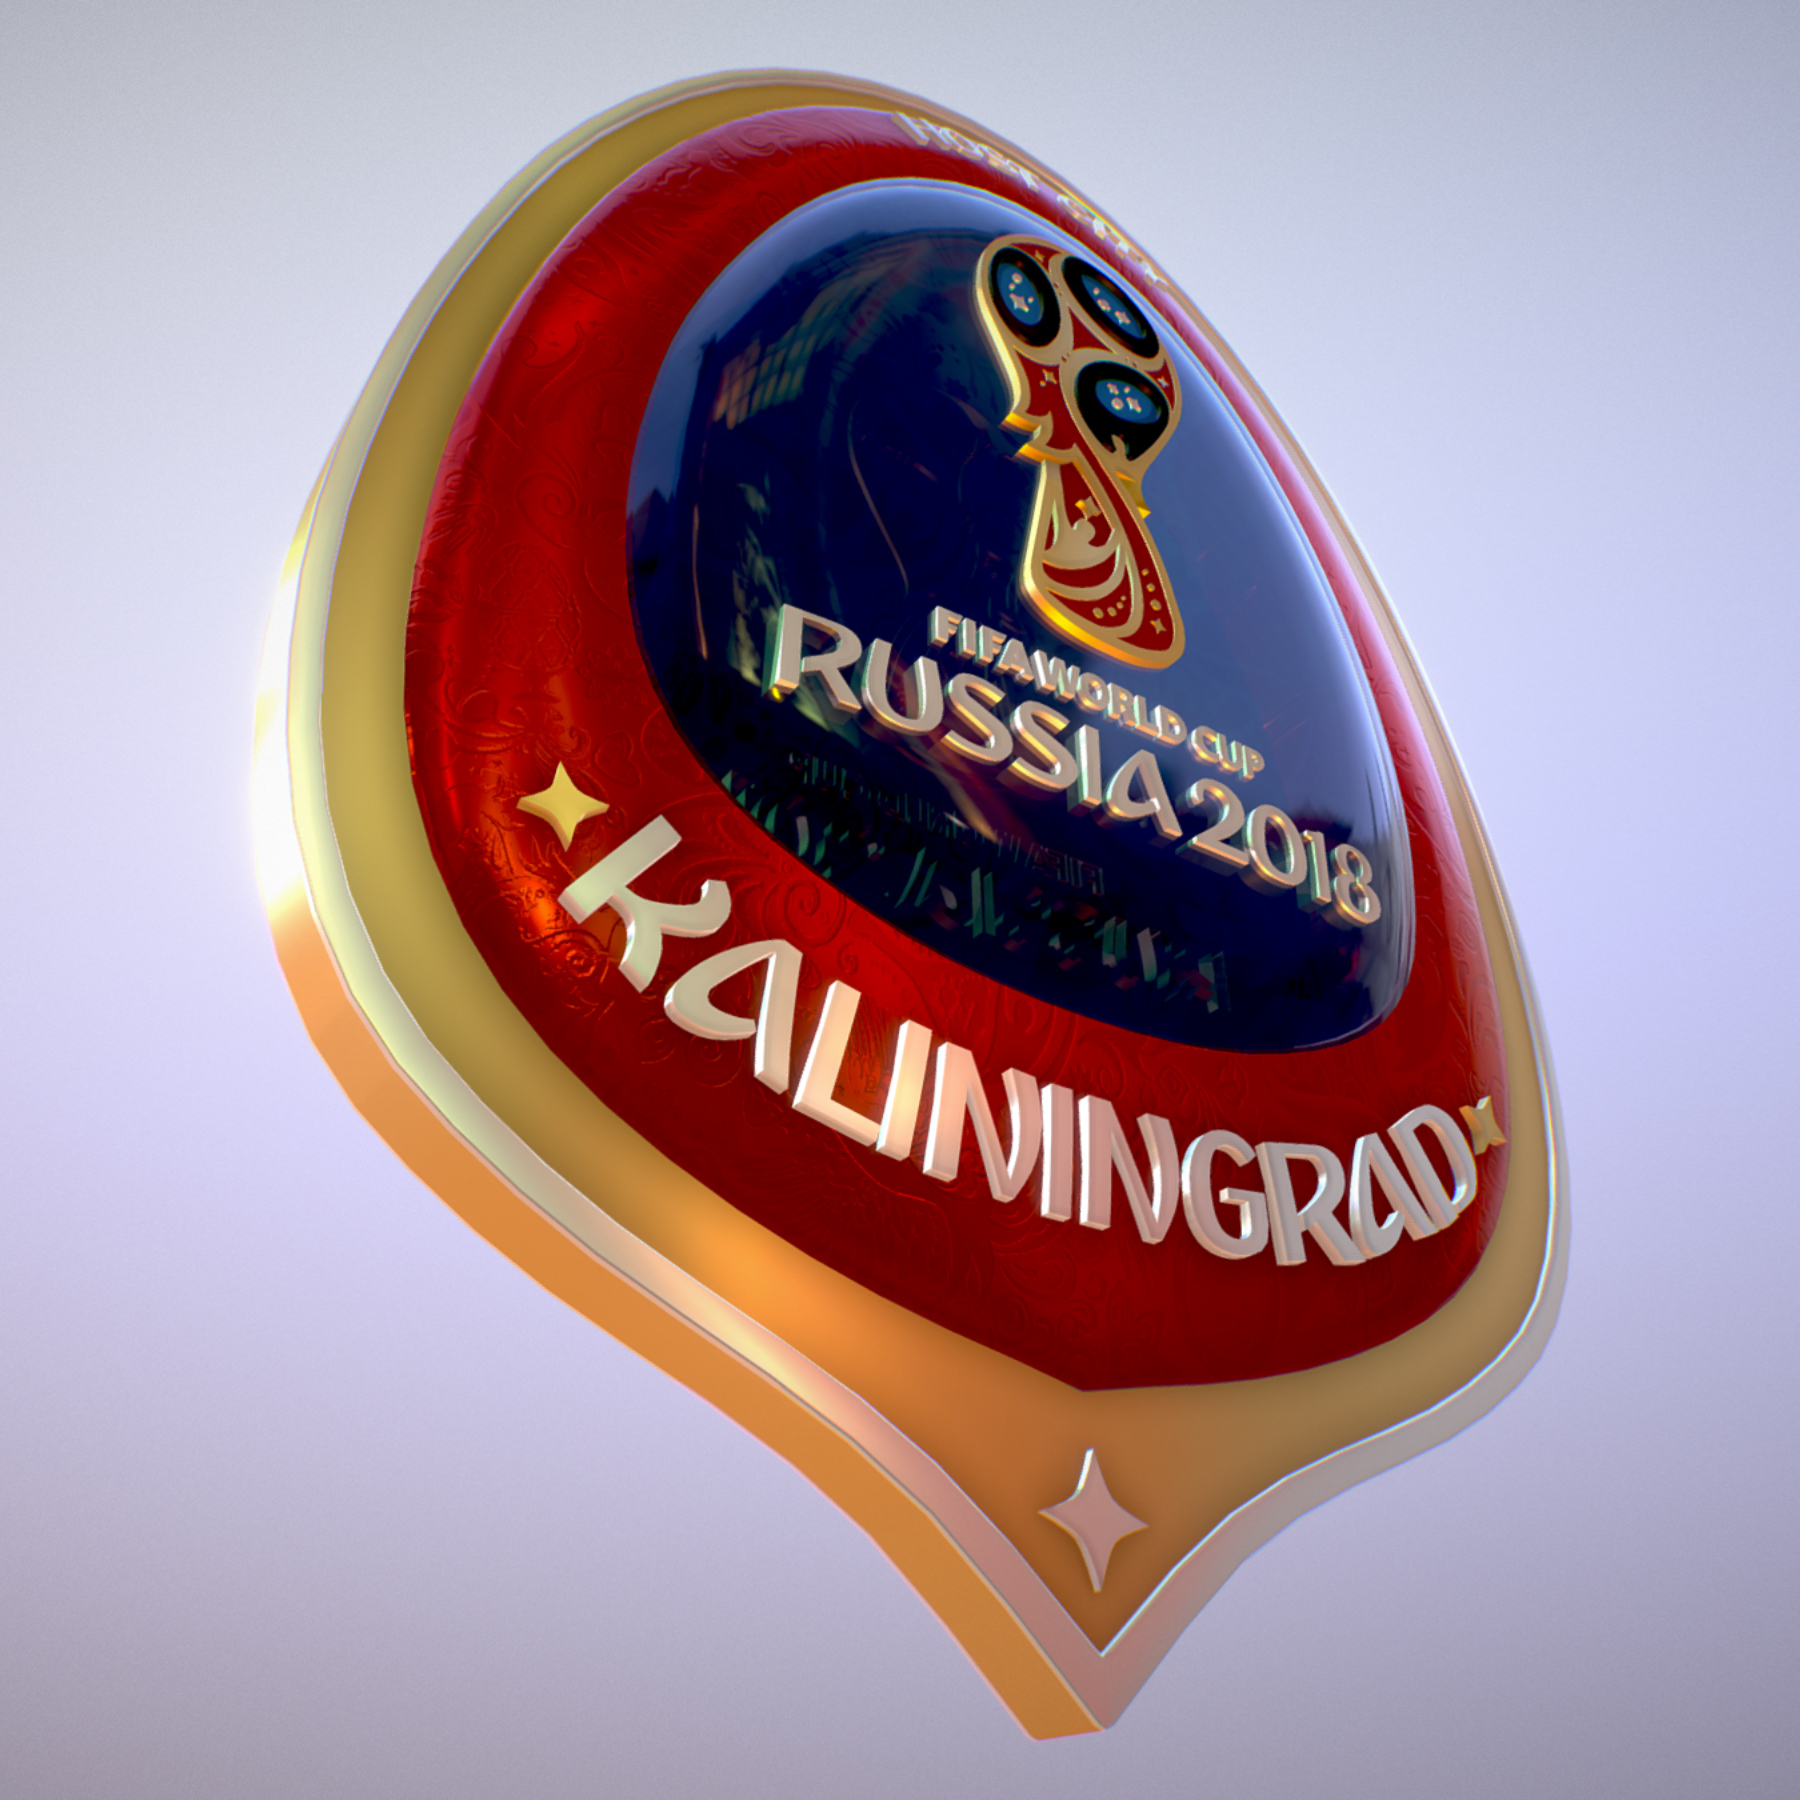 kaliningrad city world cup Rusija 2018 simbol 3d model max fbx jpeg jpg ma mb obj 271761